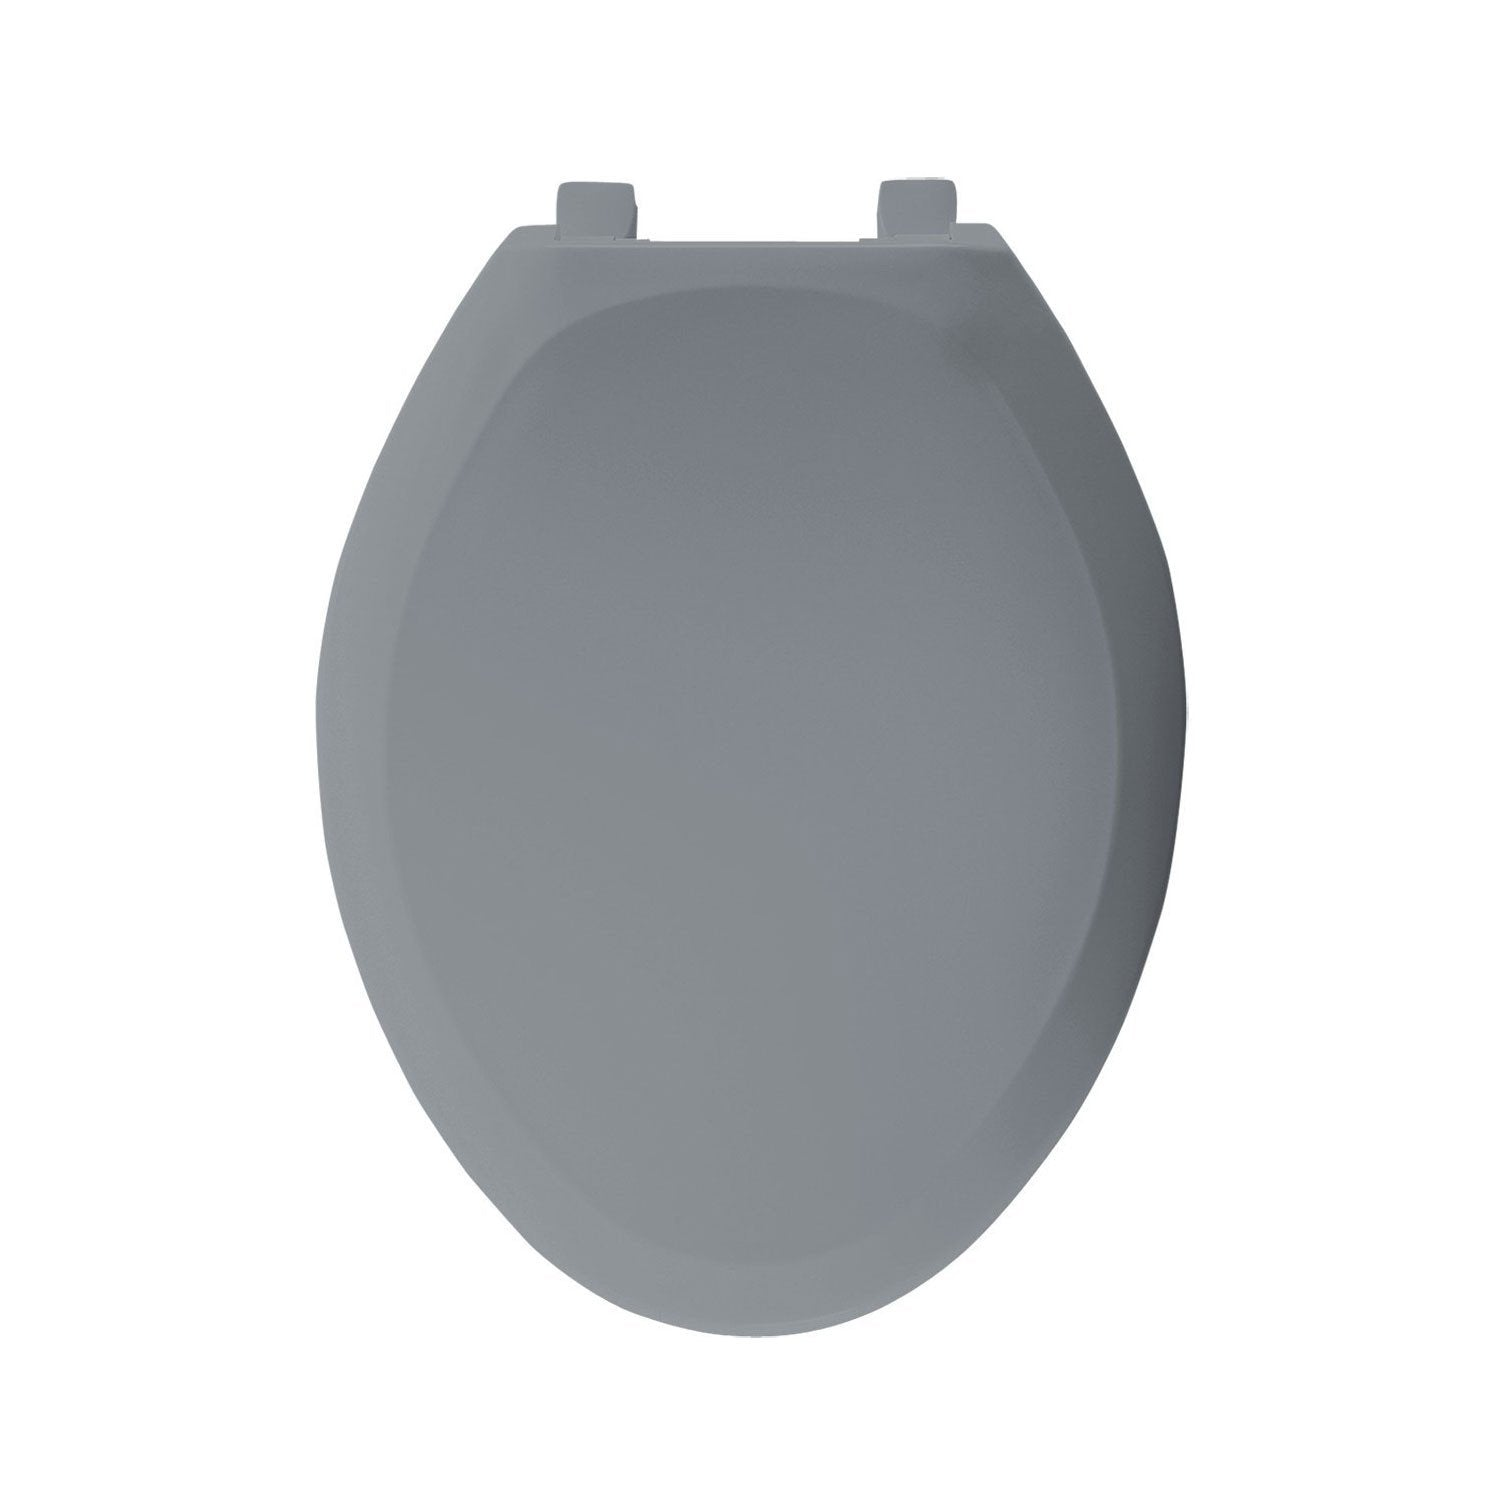 Cool Bemis Sta Tite Slow Close Elongated Closed Front Toilet Seat In Country Grey Onthecornerstone Fun Painted Chair Ideas Images Onthecornerstoneorg